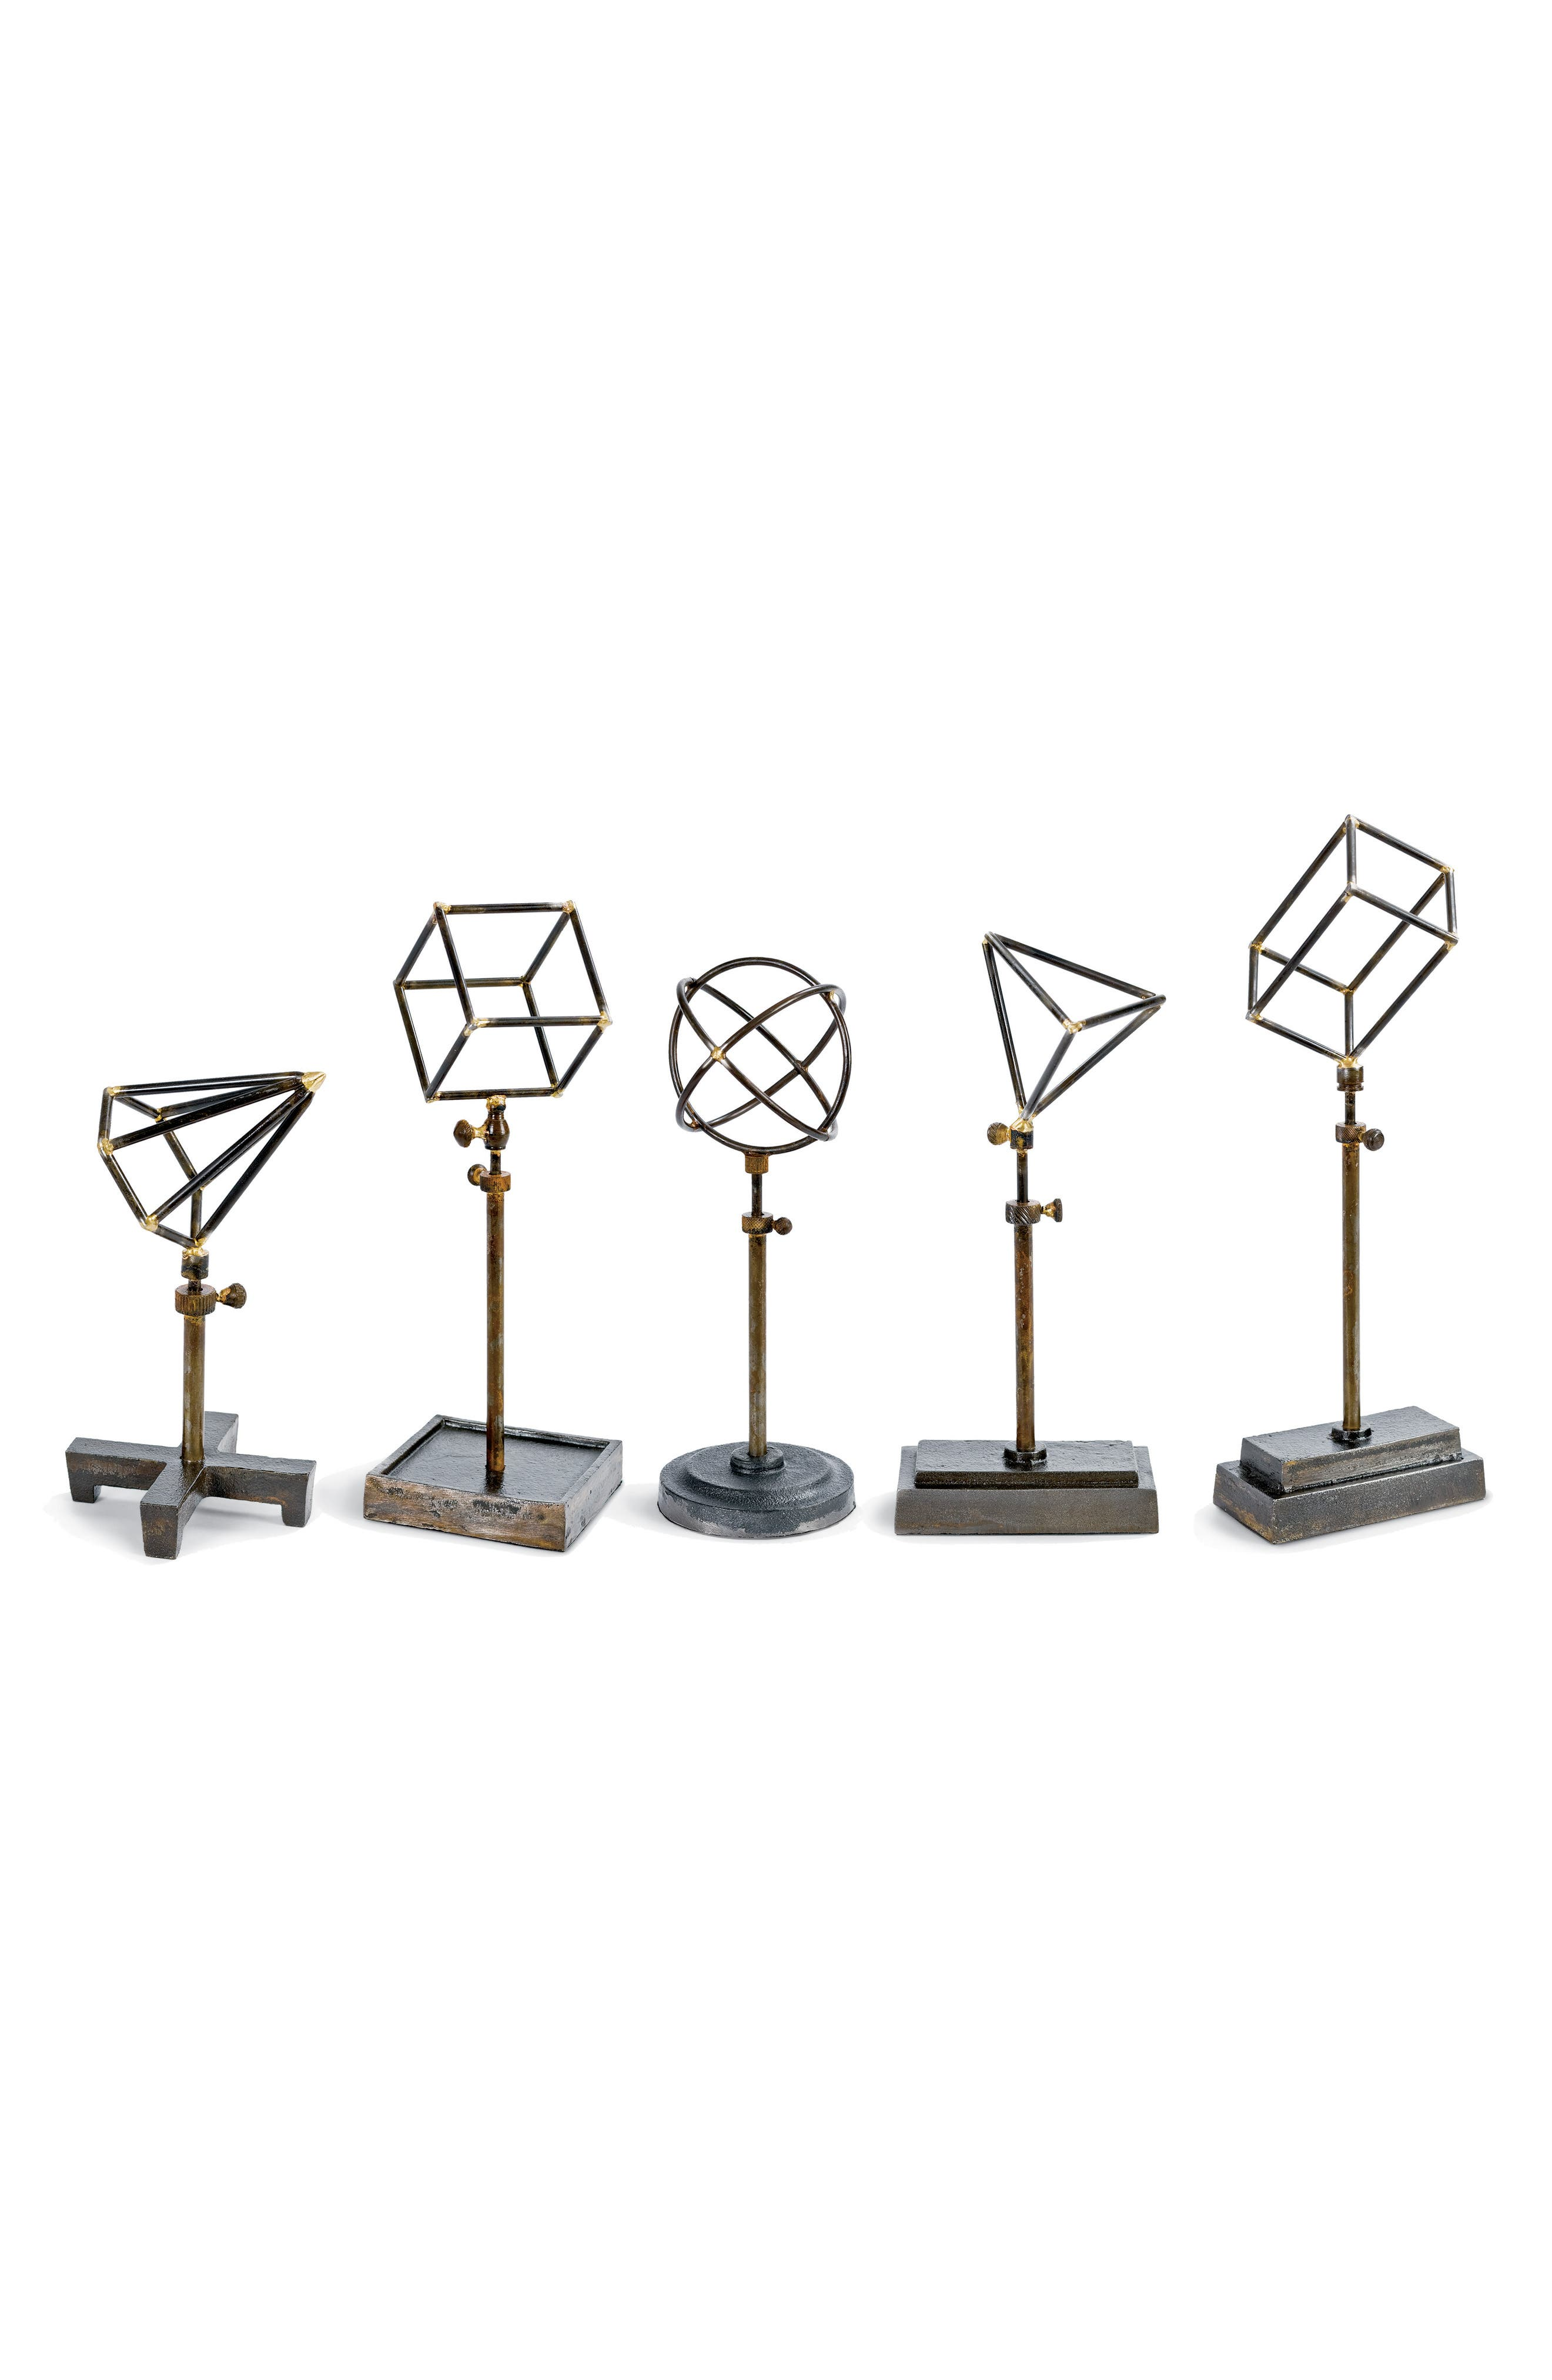 Set of 5 Geometric Sculptures,                         Main,                         color, Brass